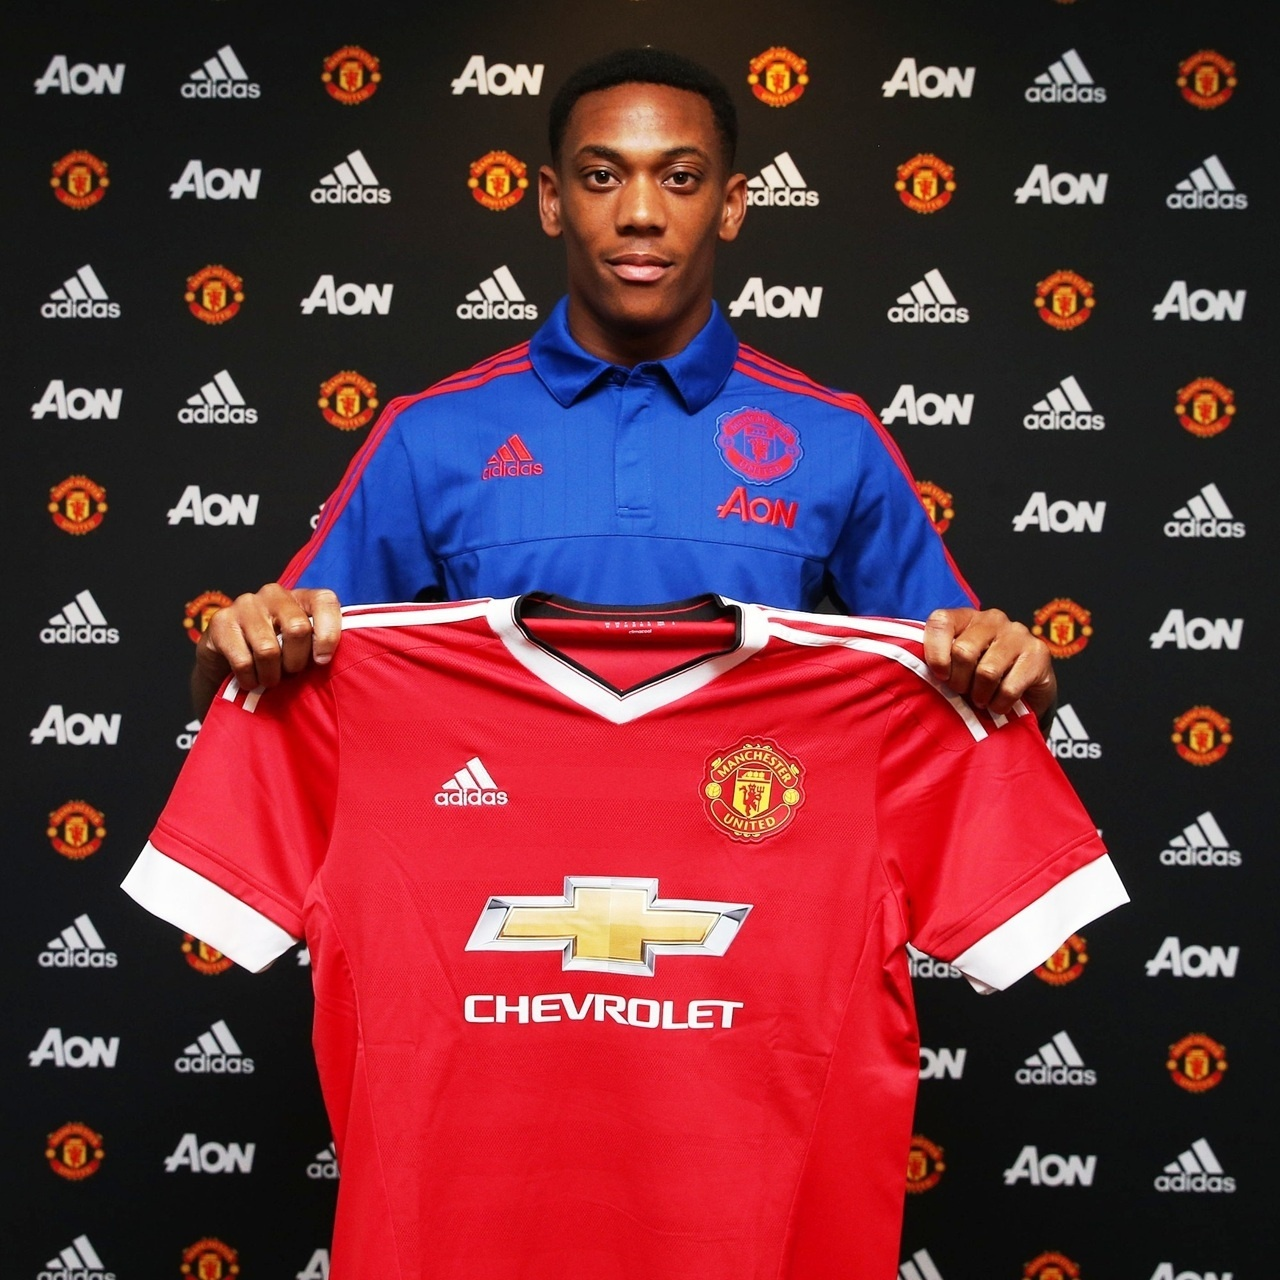 Anthony Martial é apresentado no Manchester United